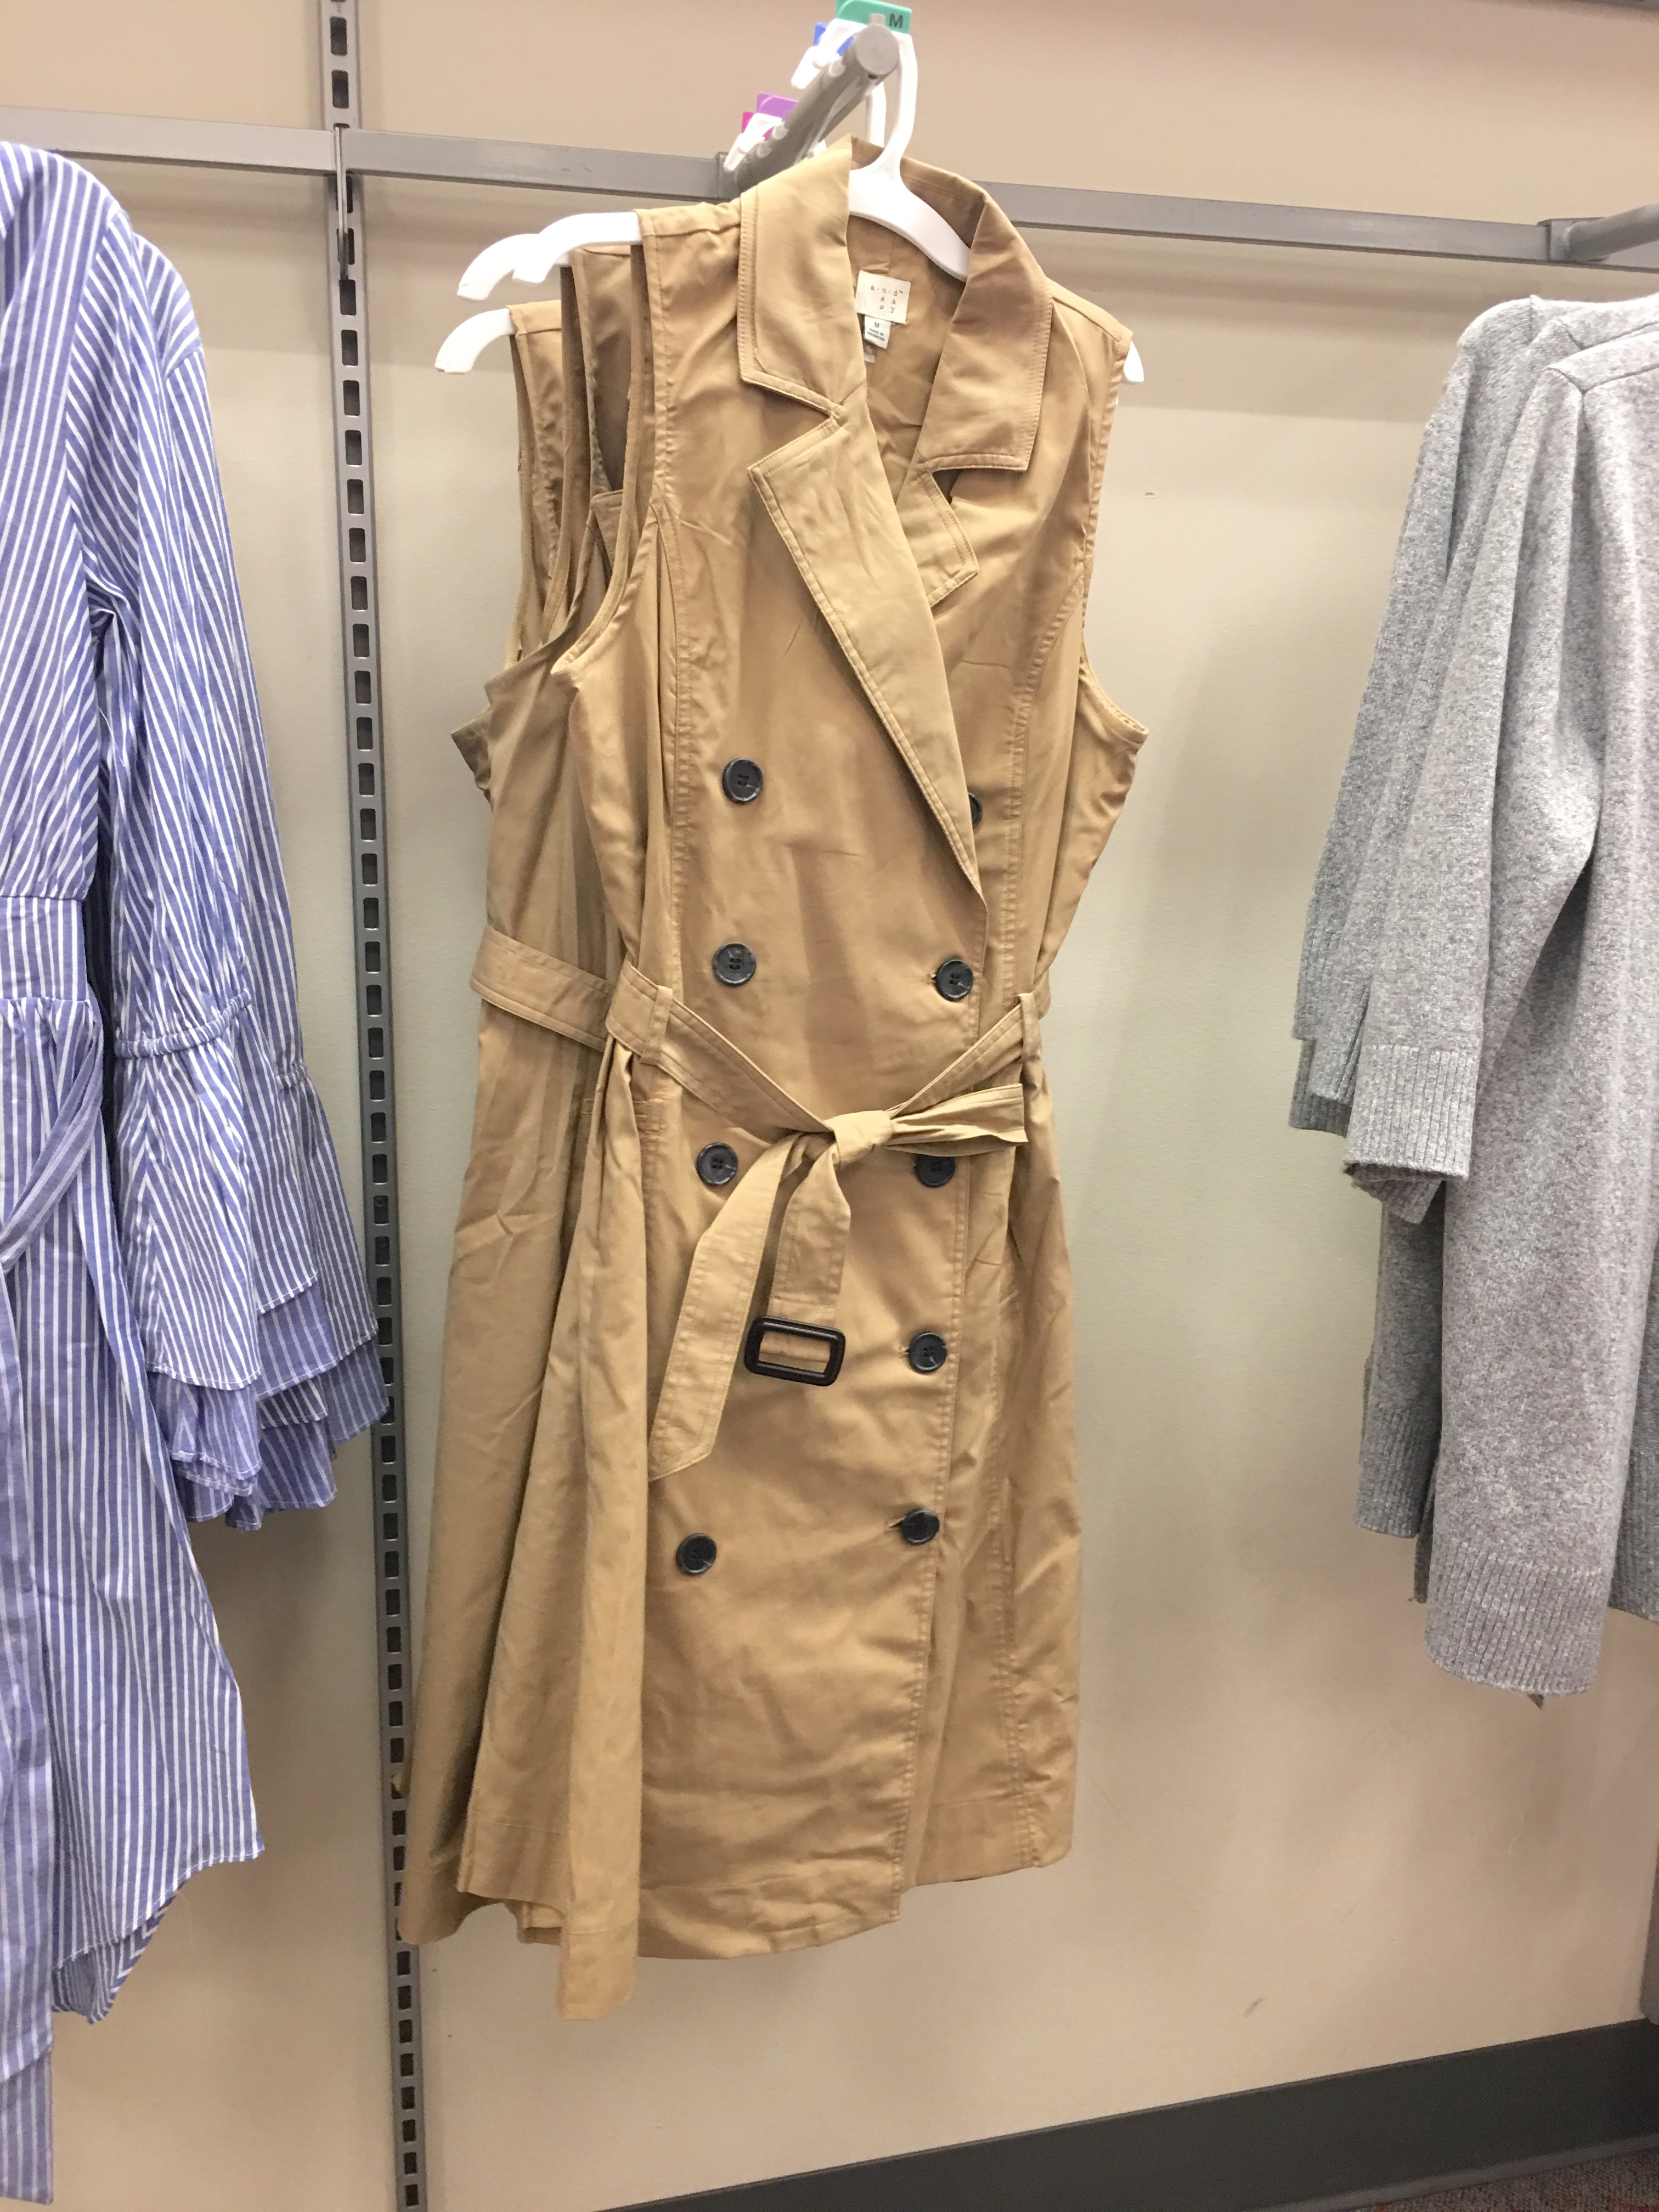 Target Universal Thread Review and Try-Ons Sleeveless Trench